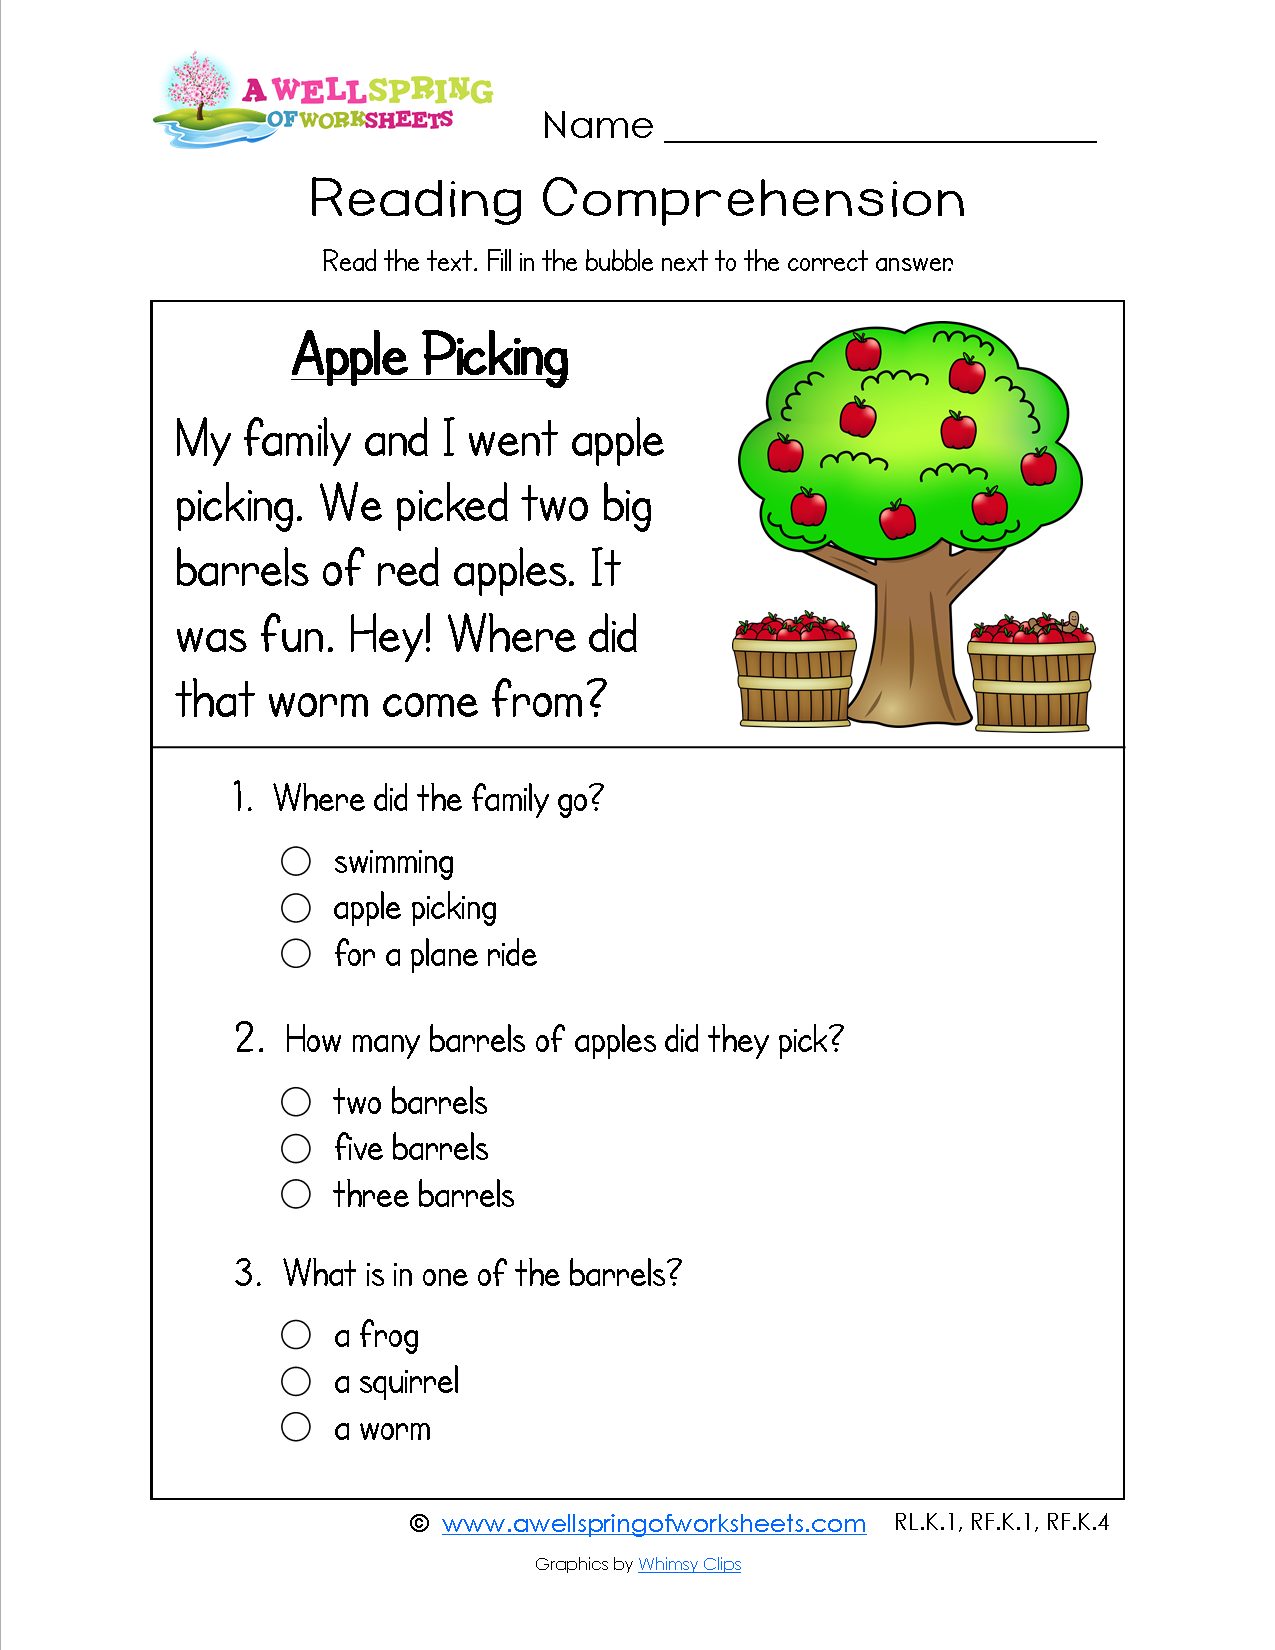 Worksheets Sentence Comprehension Worksheets a funny bug has three simple sentences and comprehension kindergarten reading worksheet about picking apples it includes four sight word rich sentences